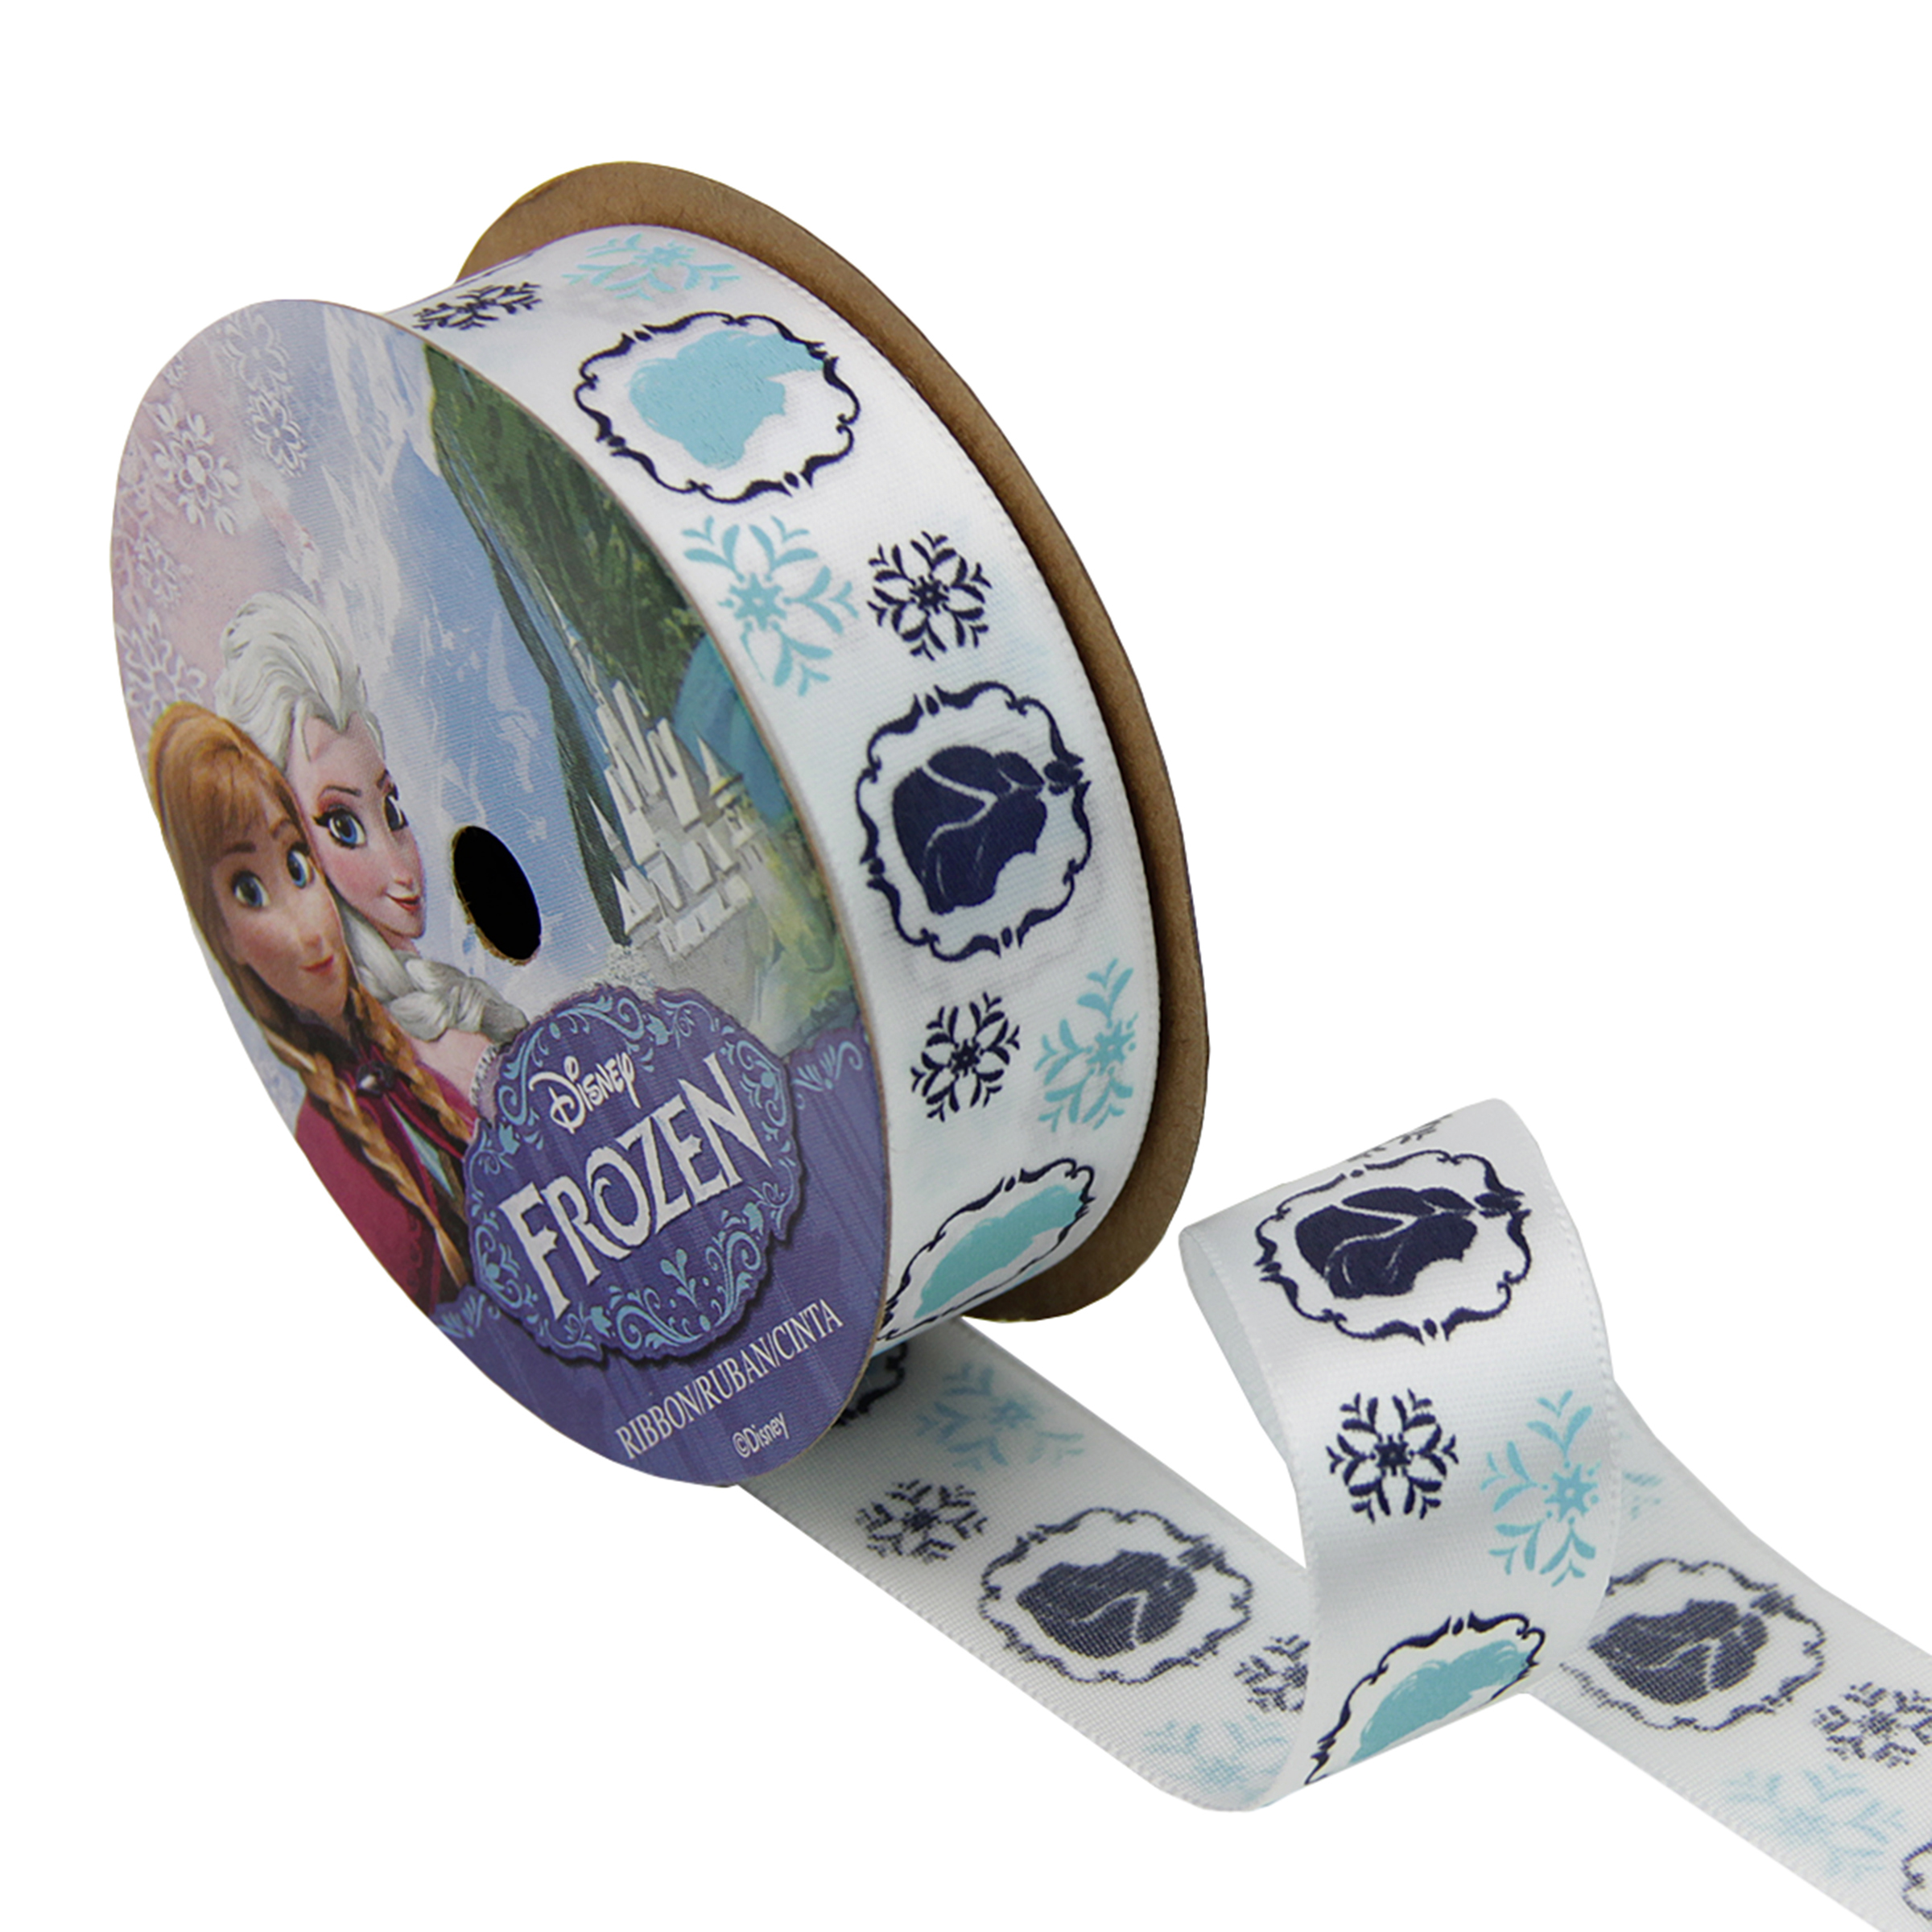 7/8'' Frozen Ribbon Royal Characters White 3YD Spool by Stardom Specialty in USA